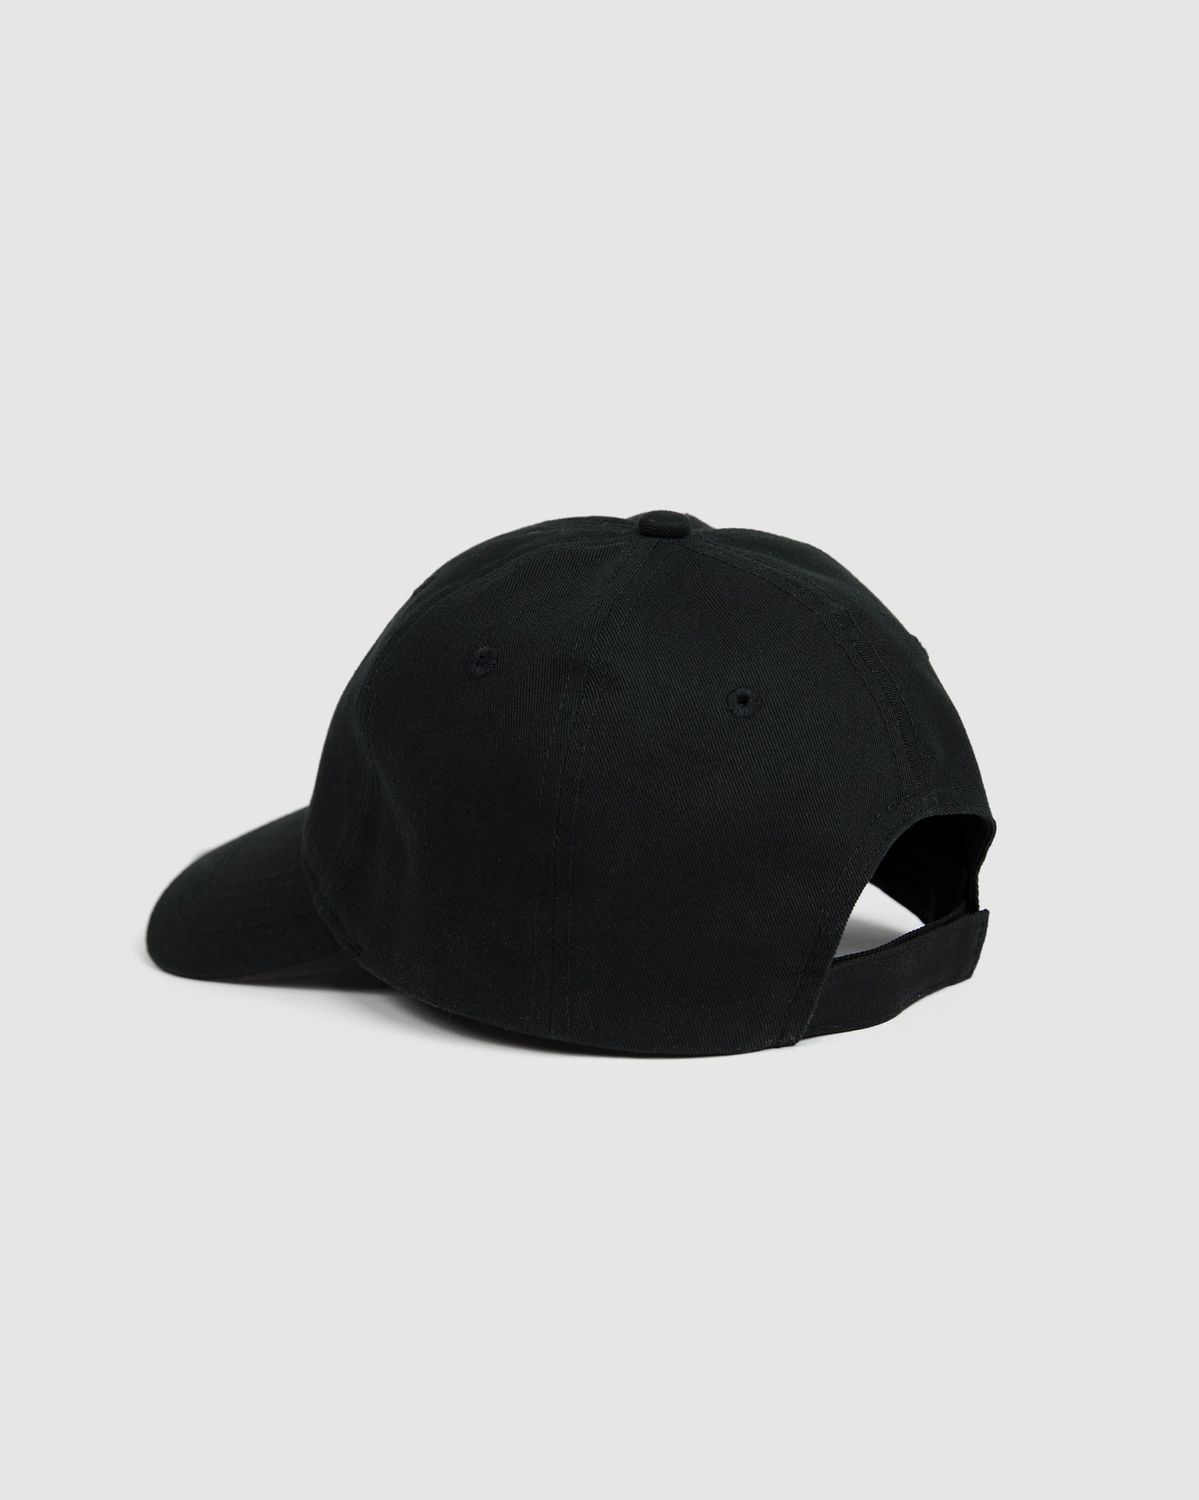 Colette Mon Amour x Soulland -  Snoopy Heart Black Baseball Cap - Image 2